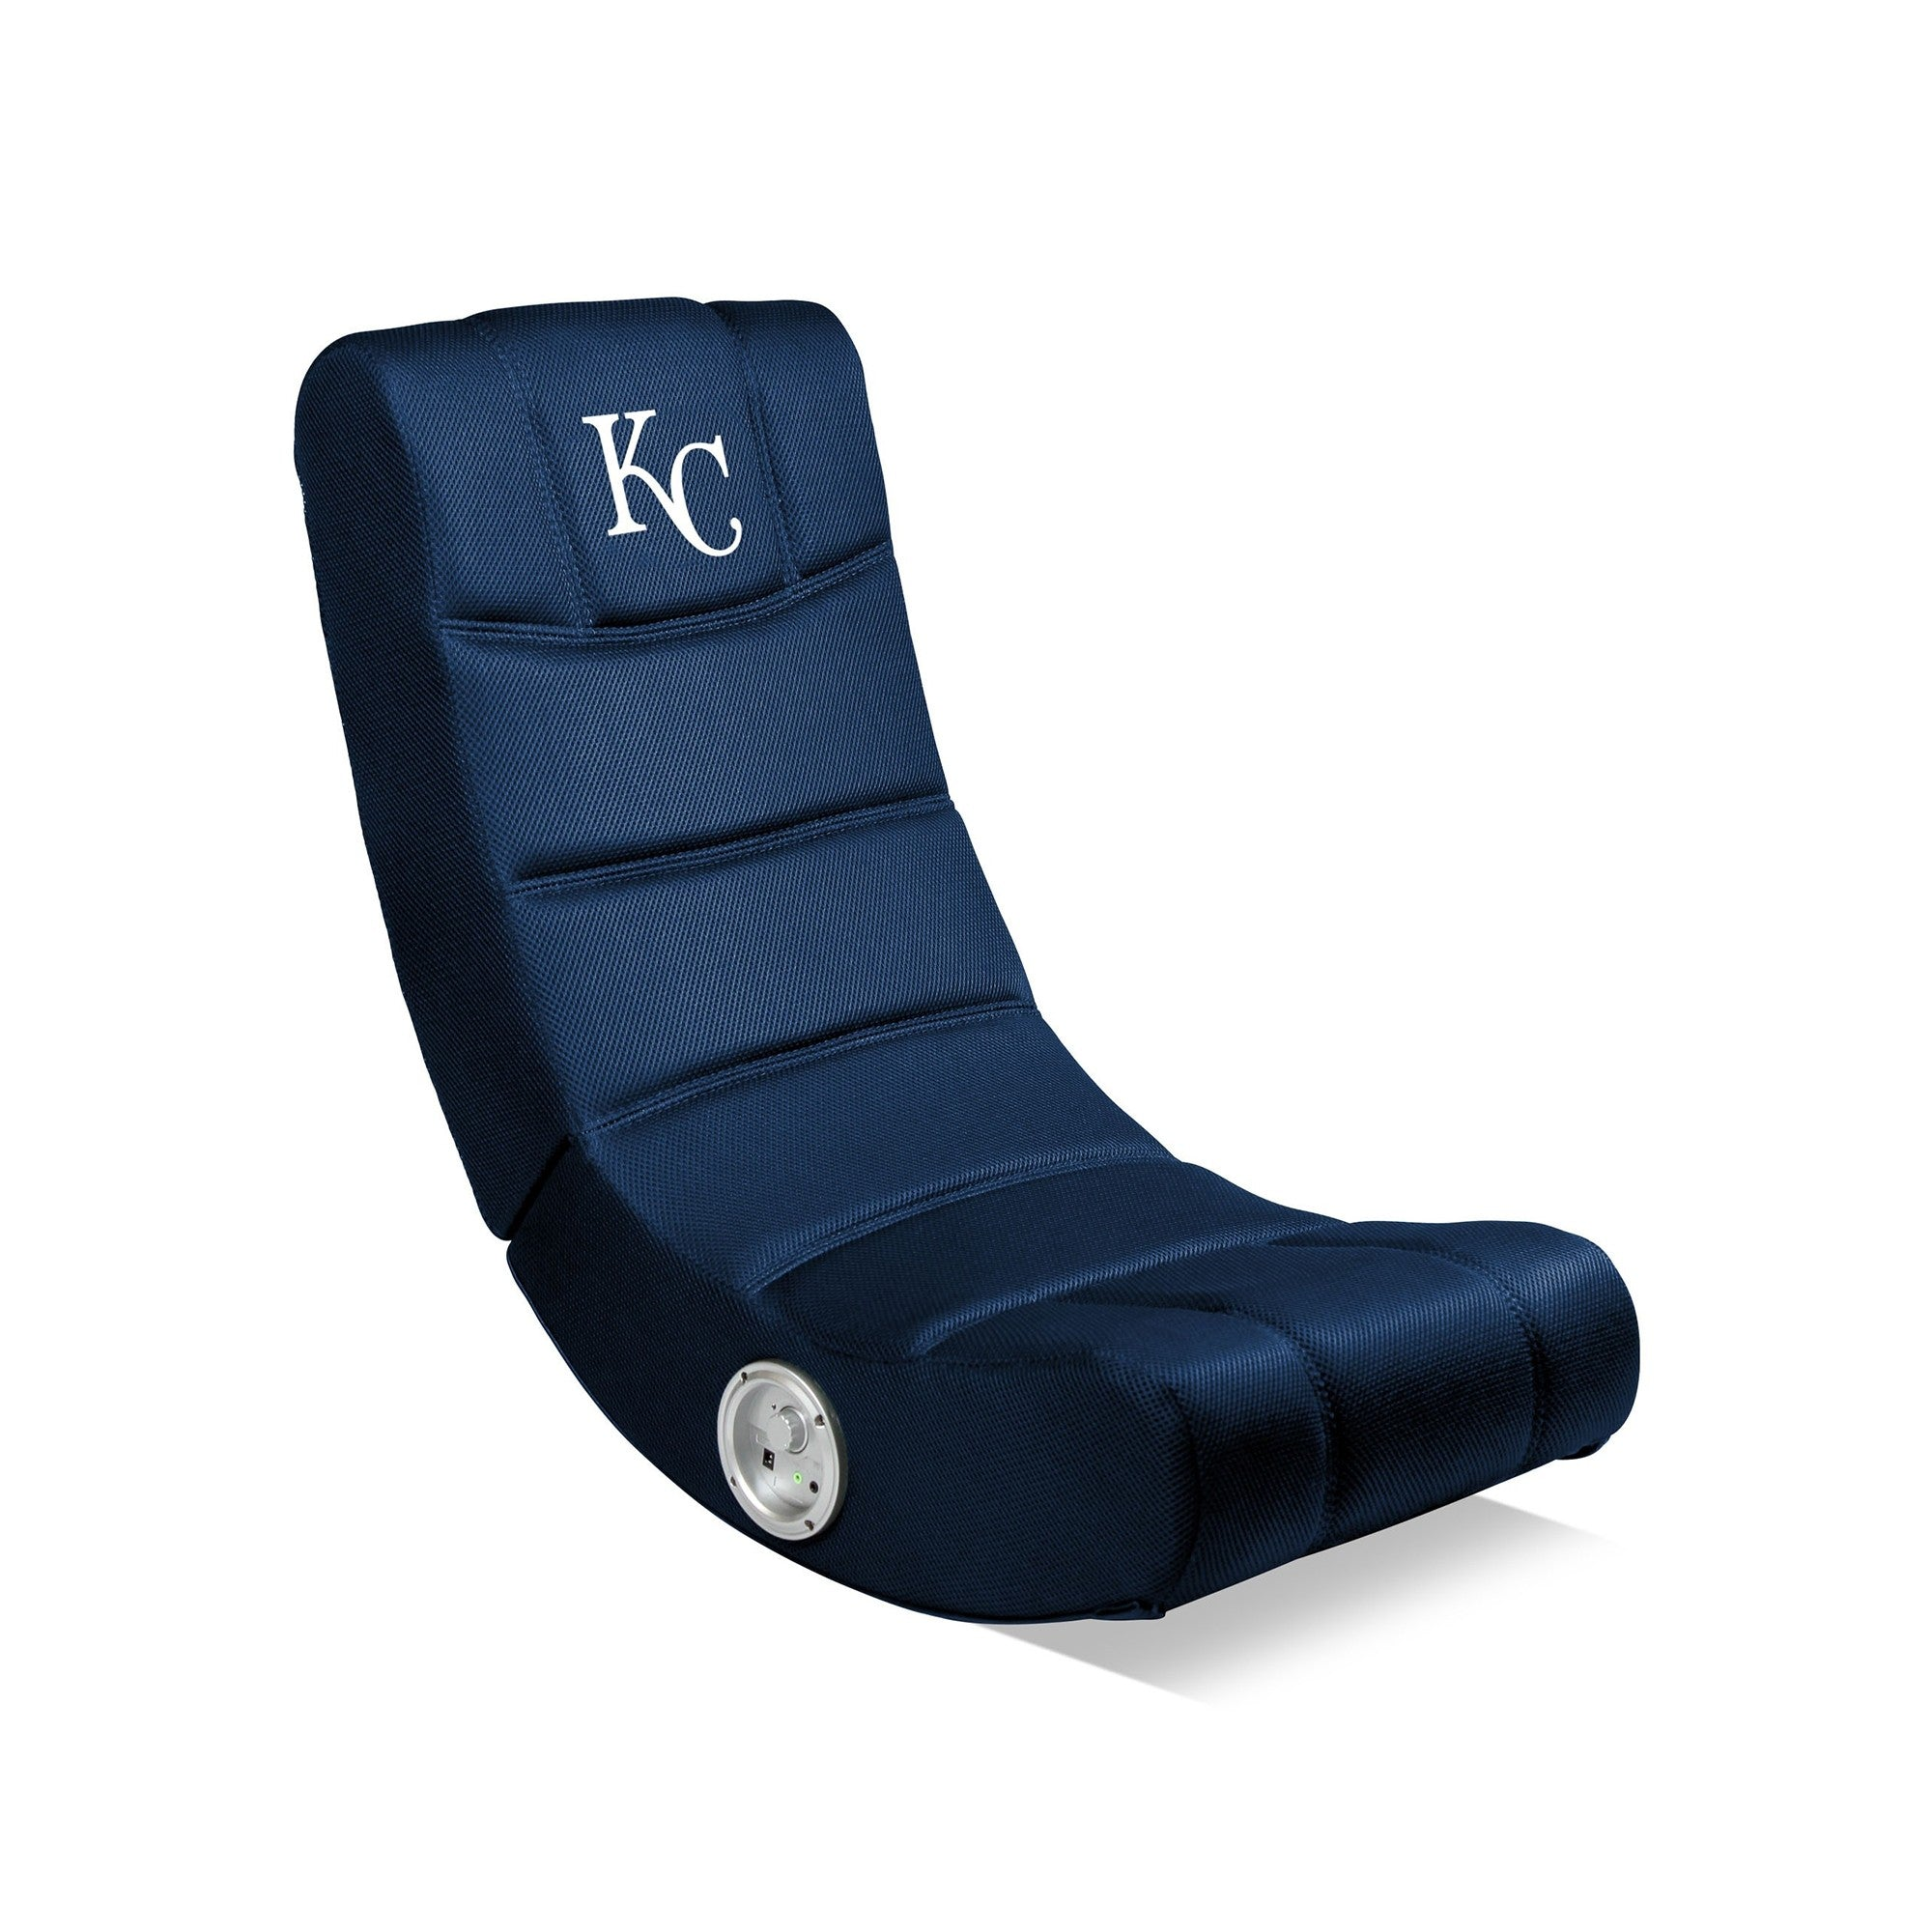 MLB Gaming Chairs - Racer Gaming Chairs